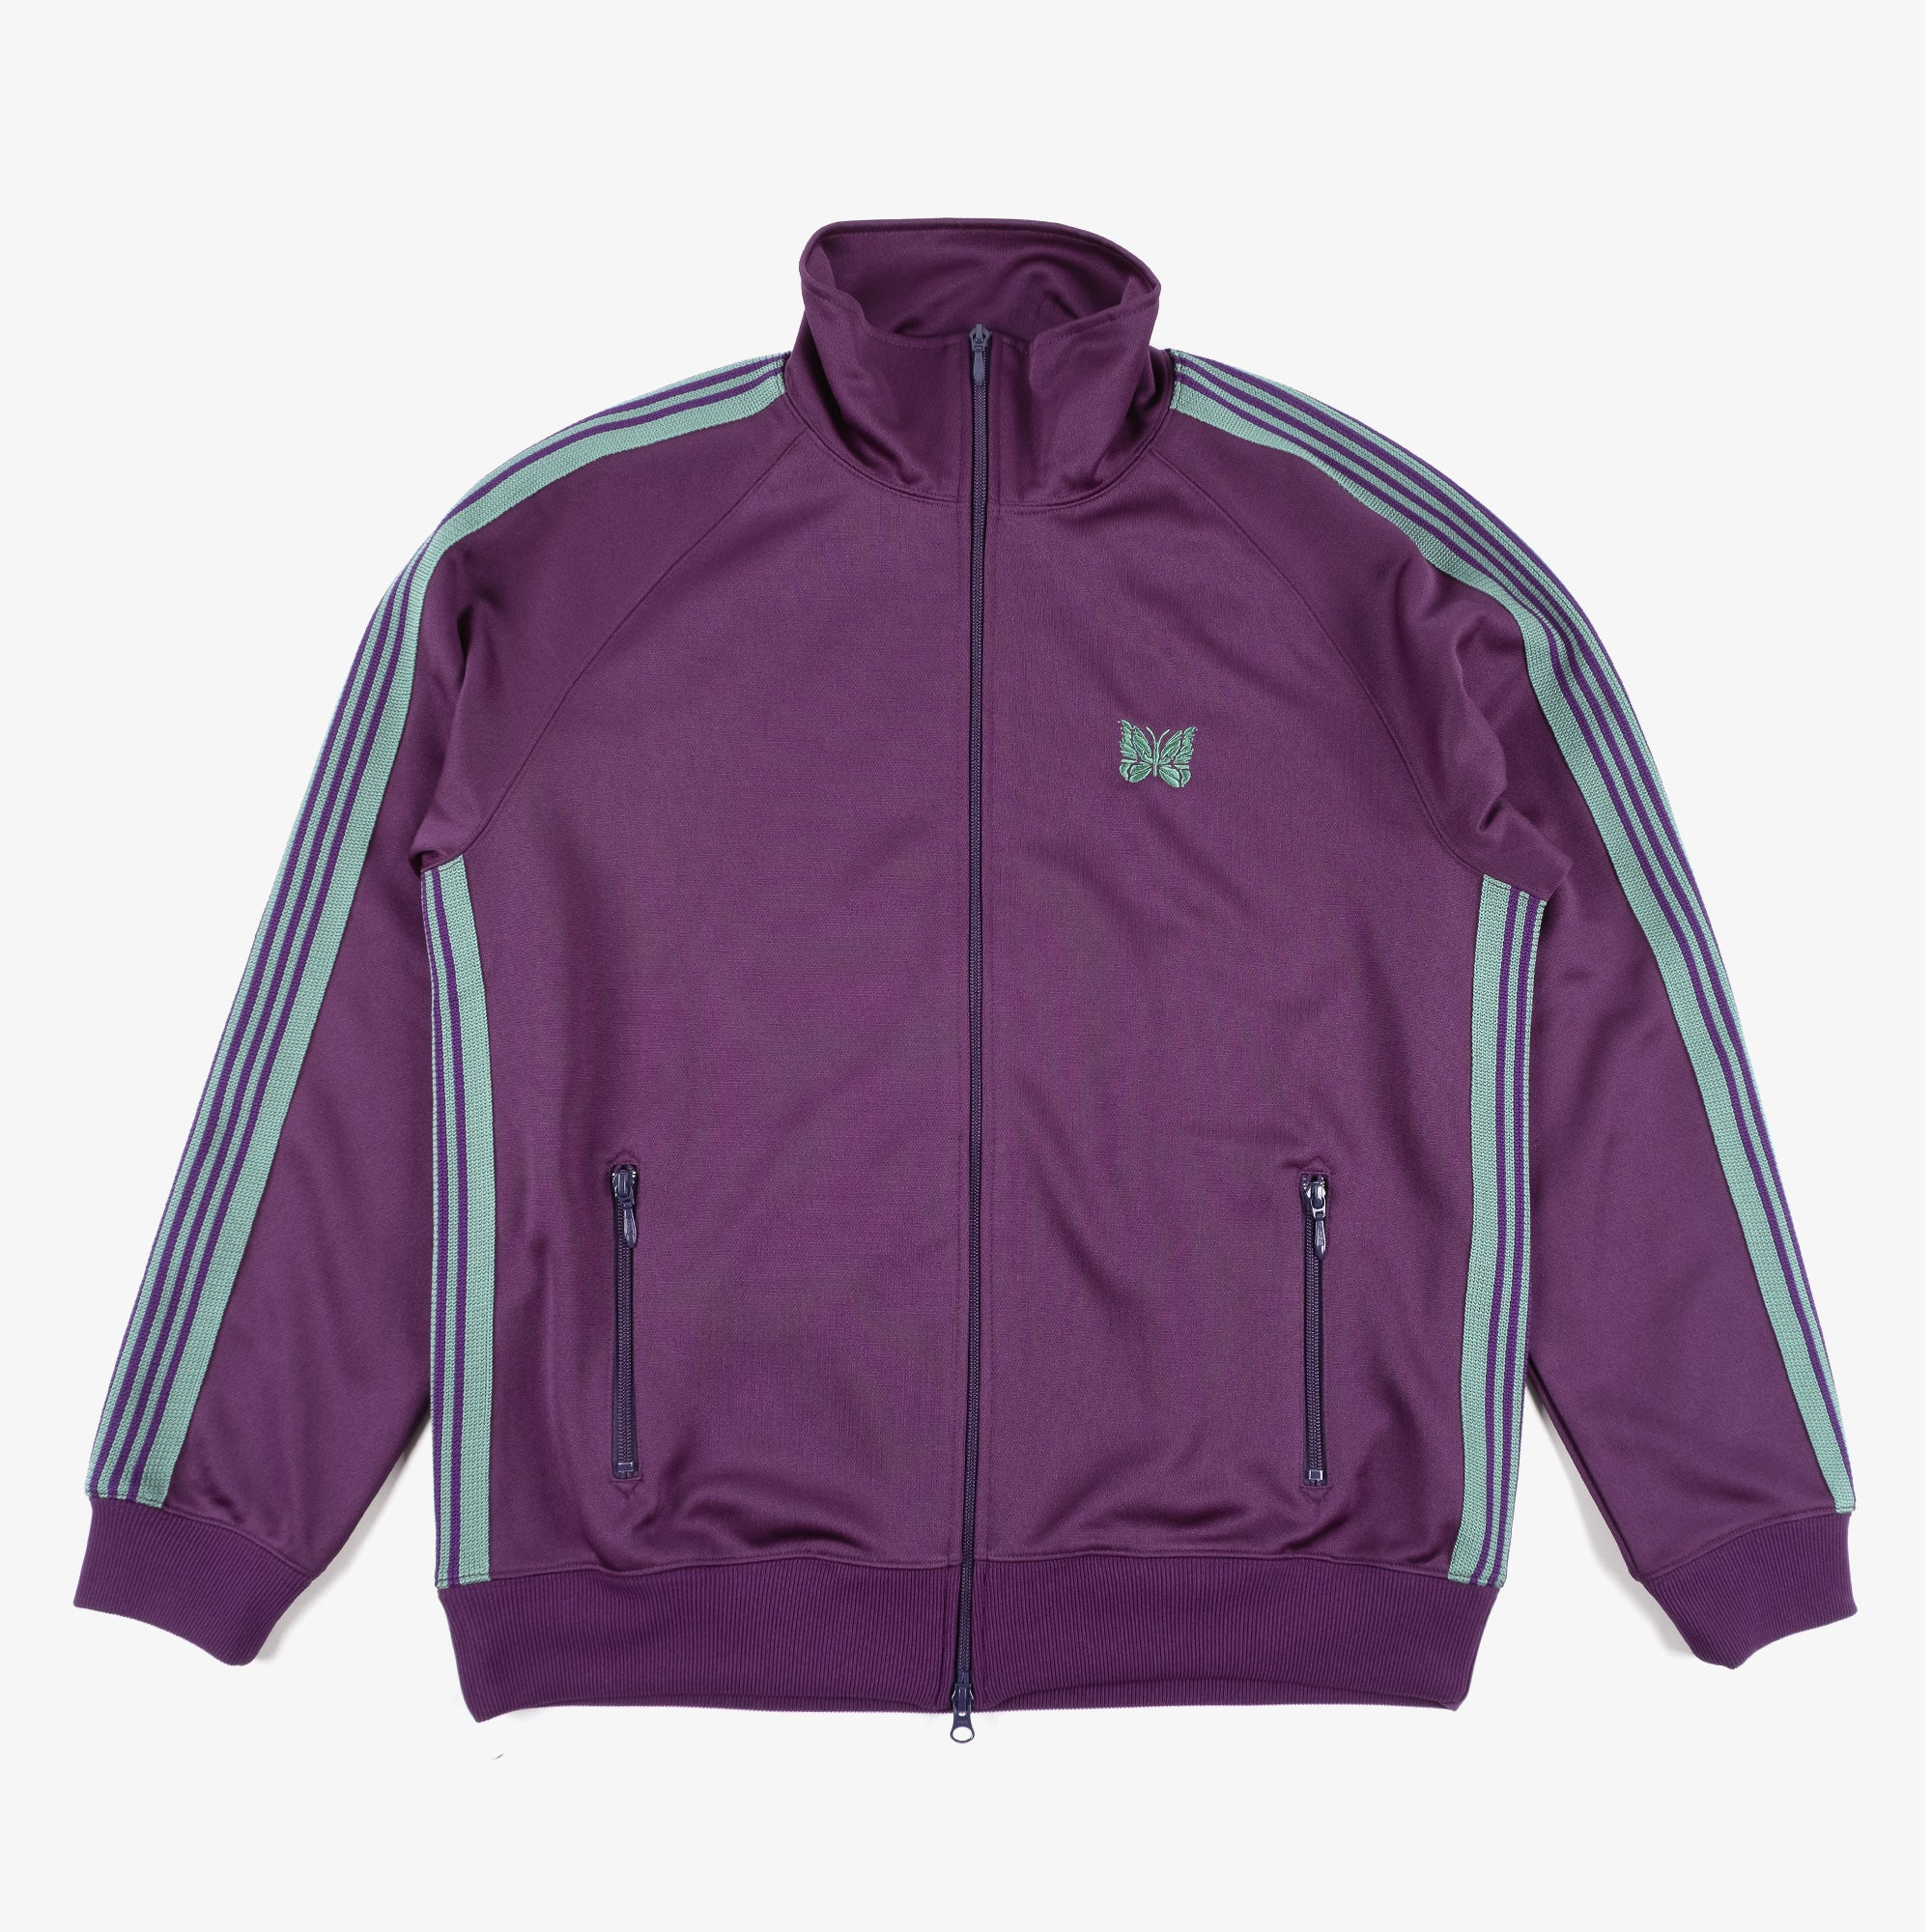 Needles M' Track Jacket - Poly Smooth Eggplant 1